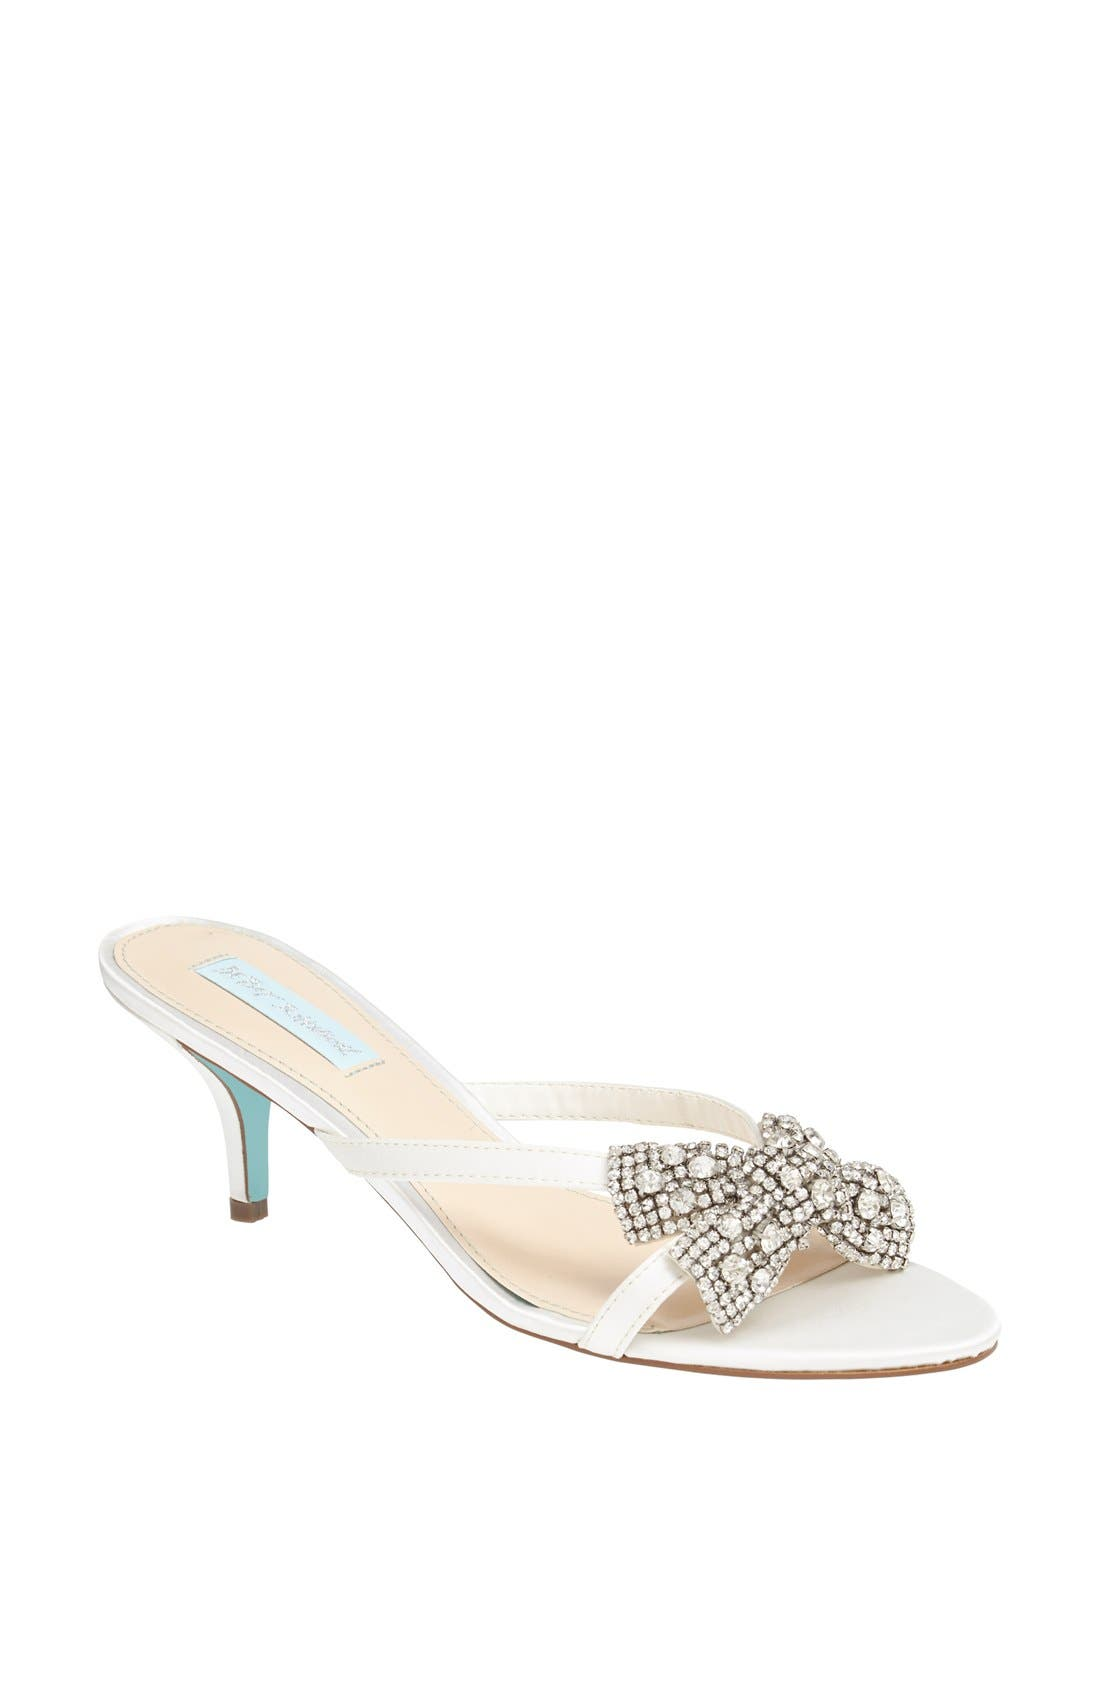 Main Image - Betsey Johnson 'Blush' Sandal